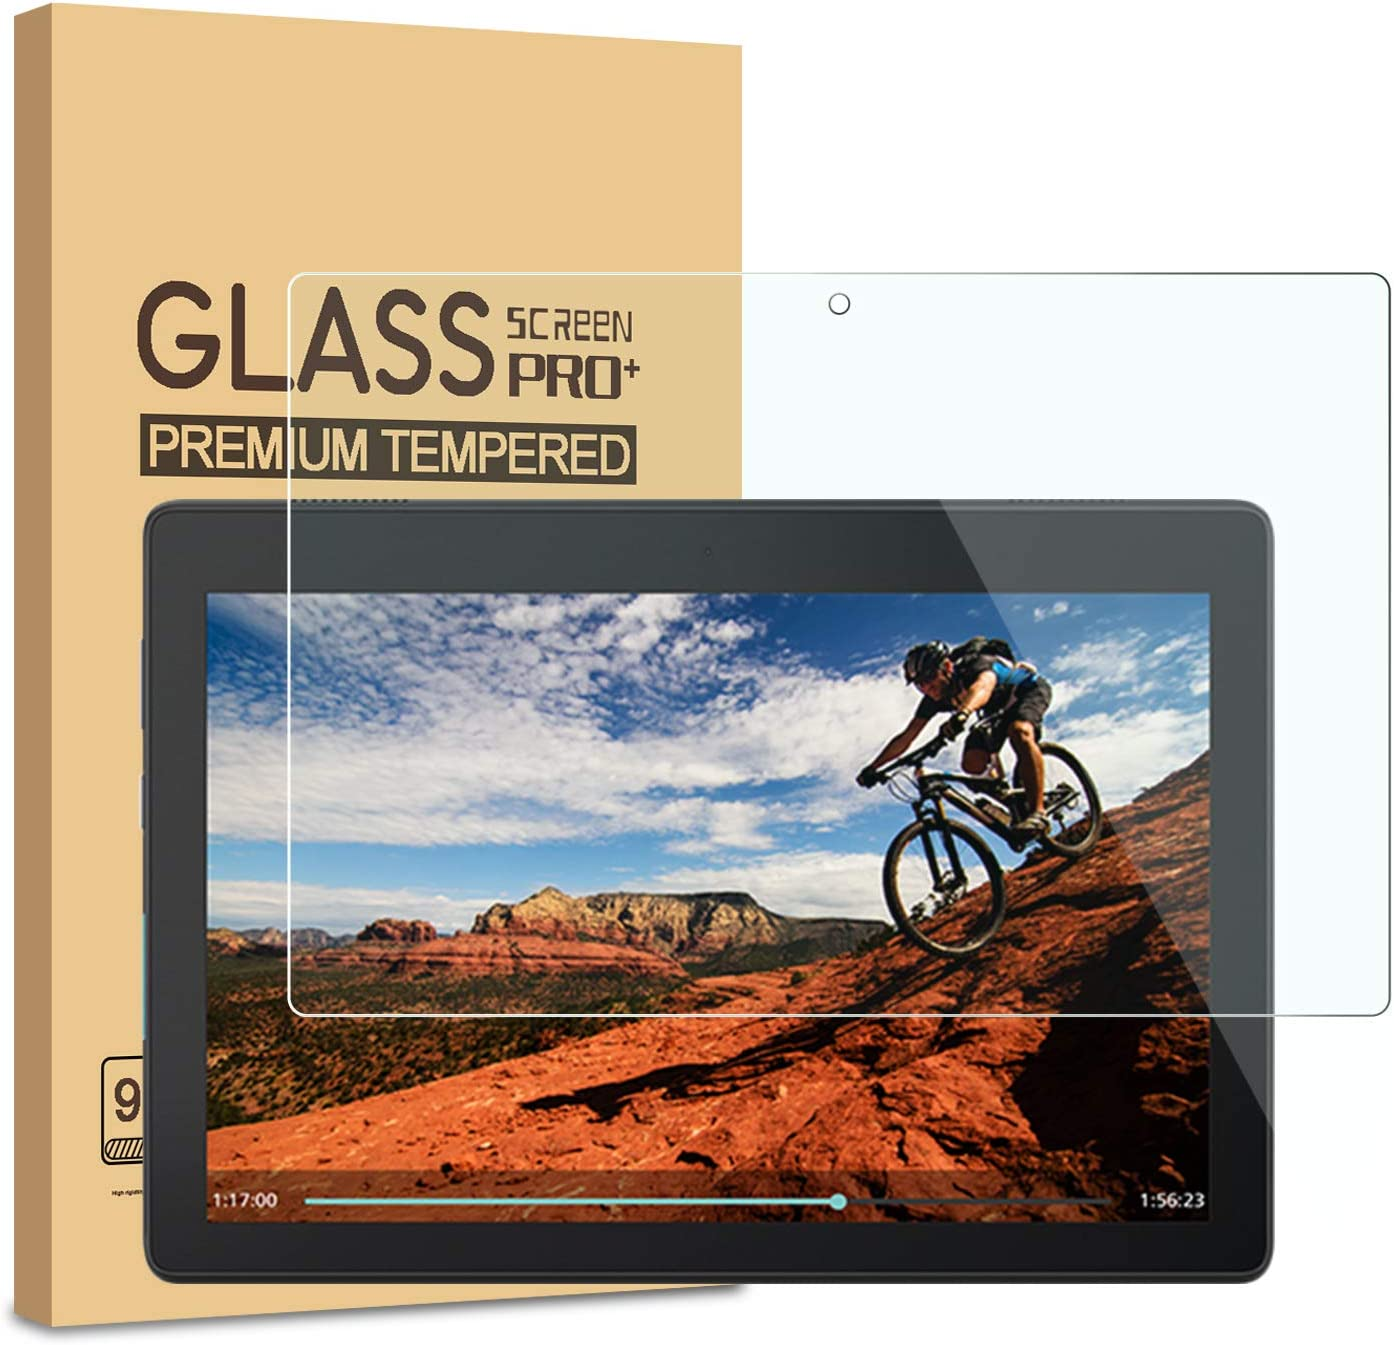 [2 Pack] Lenovo TAB E10 Screen Protector, KATIAN HD Clear Protector [Anti-Scratch] [No-Bubble] [Case-Friendly], 9H Hardness Tempered Glass Screen Film for Lenovo TAB E10(TB-X104F)